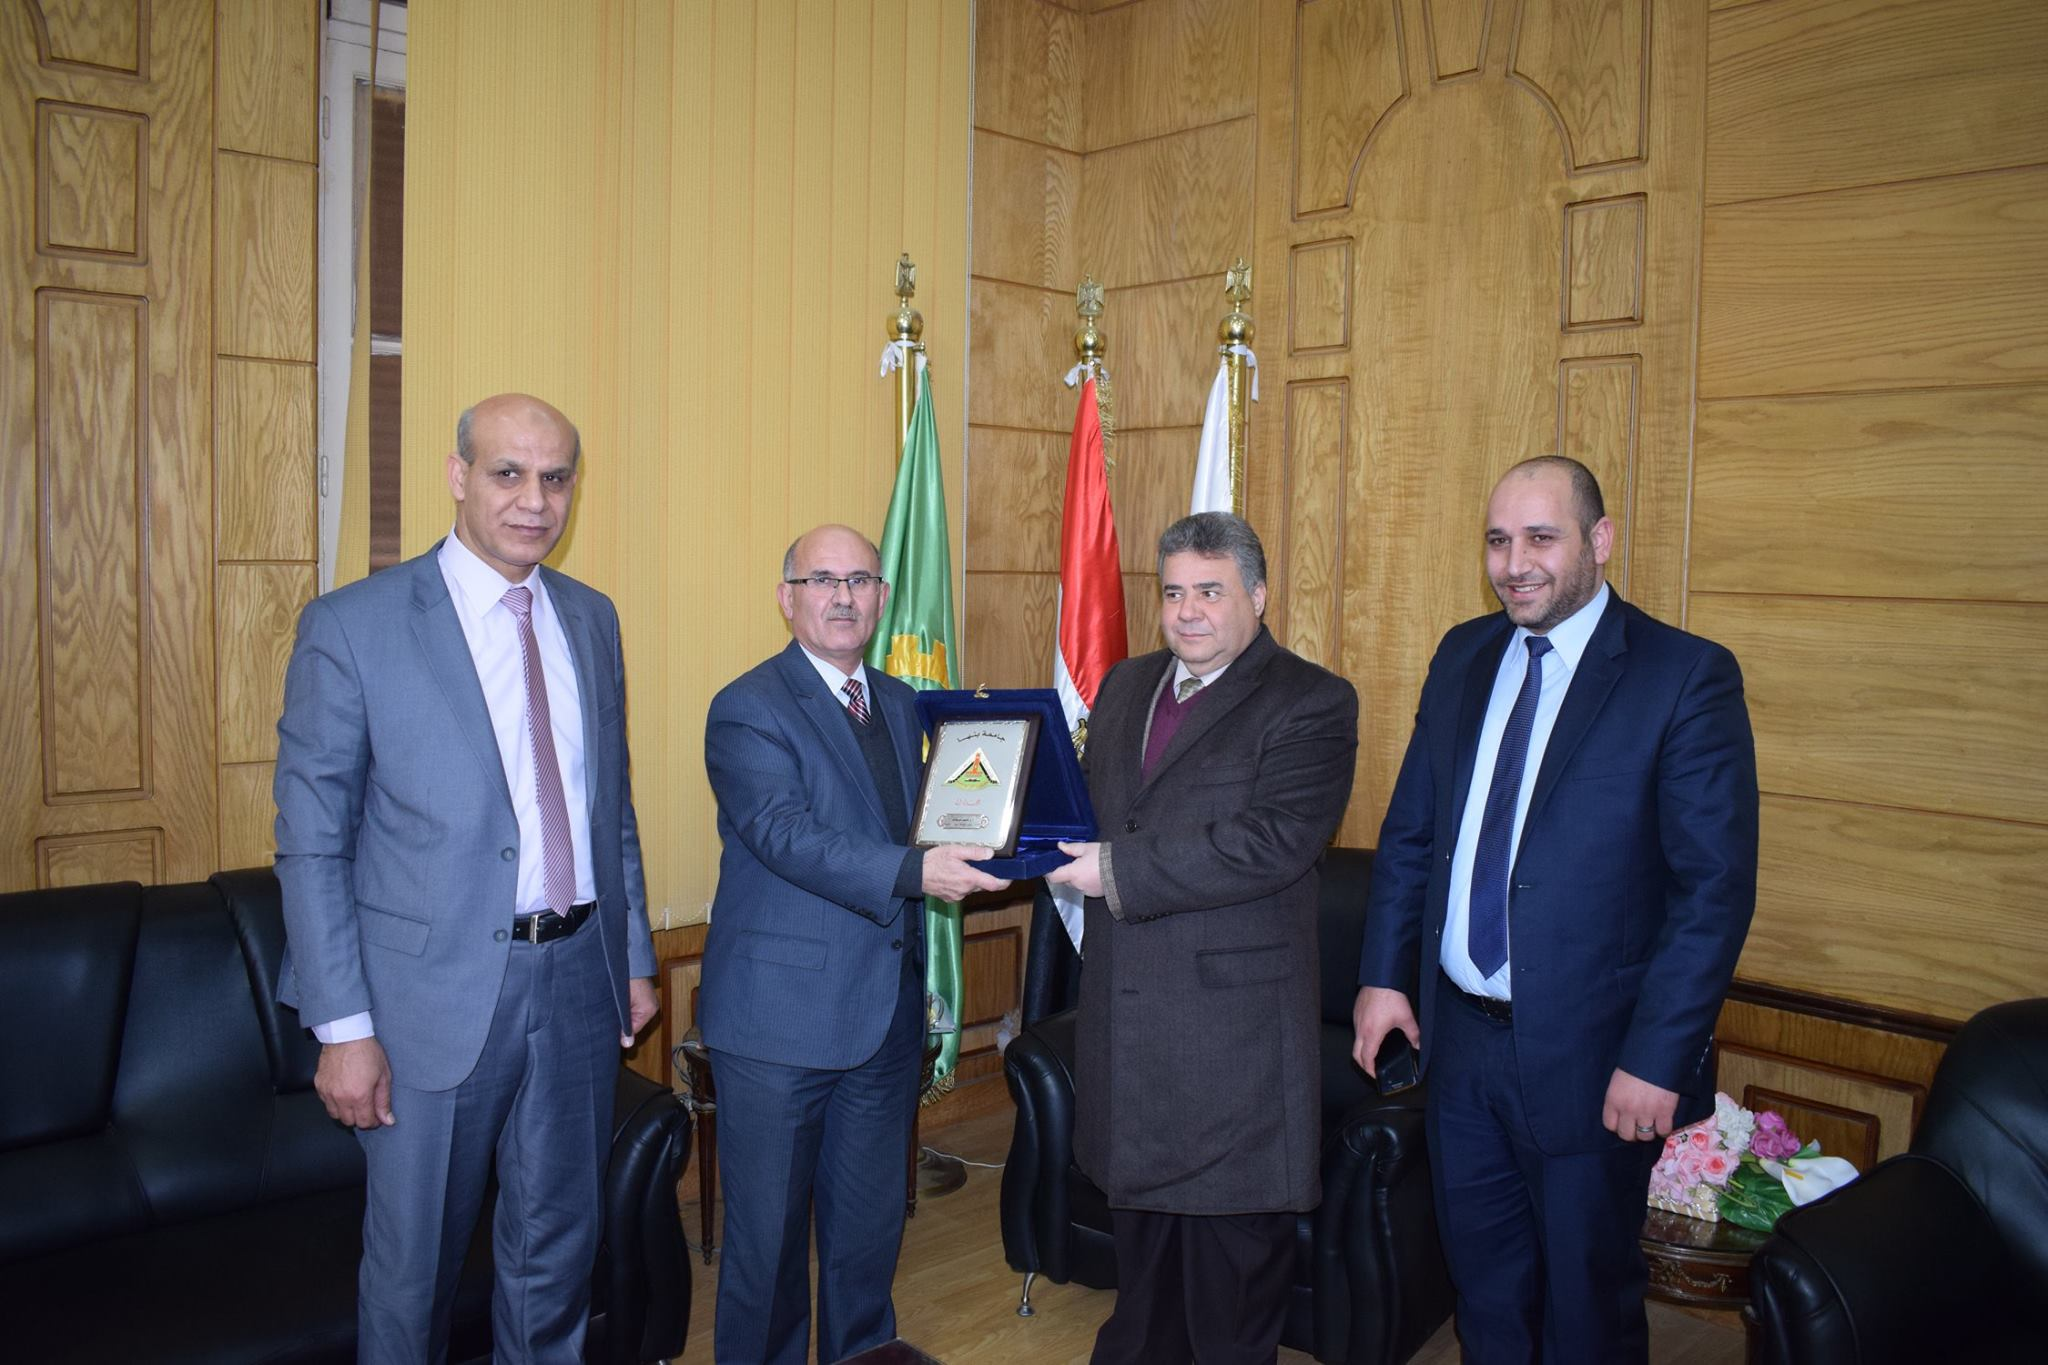 The establishment of the first Forum of Higher Education between Benha and Jordanian universities